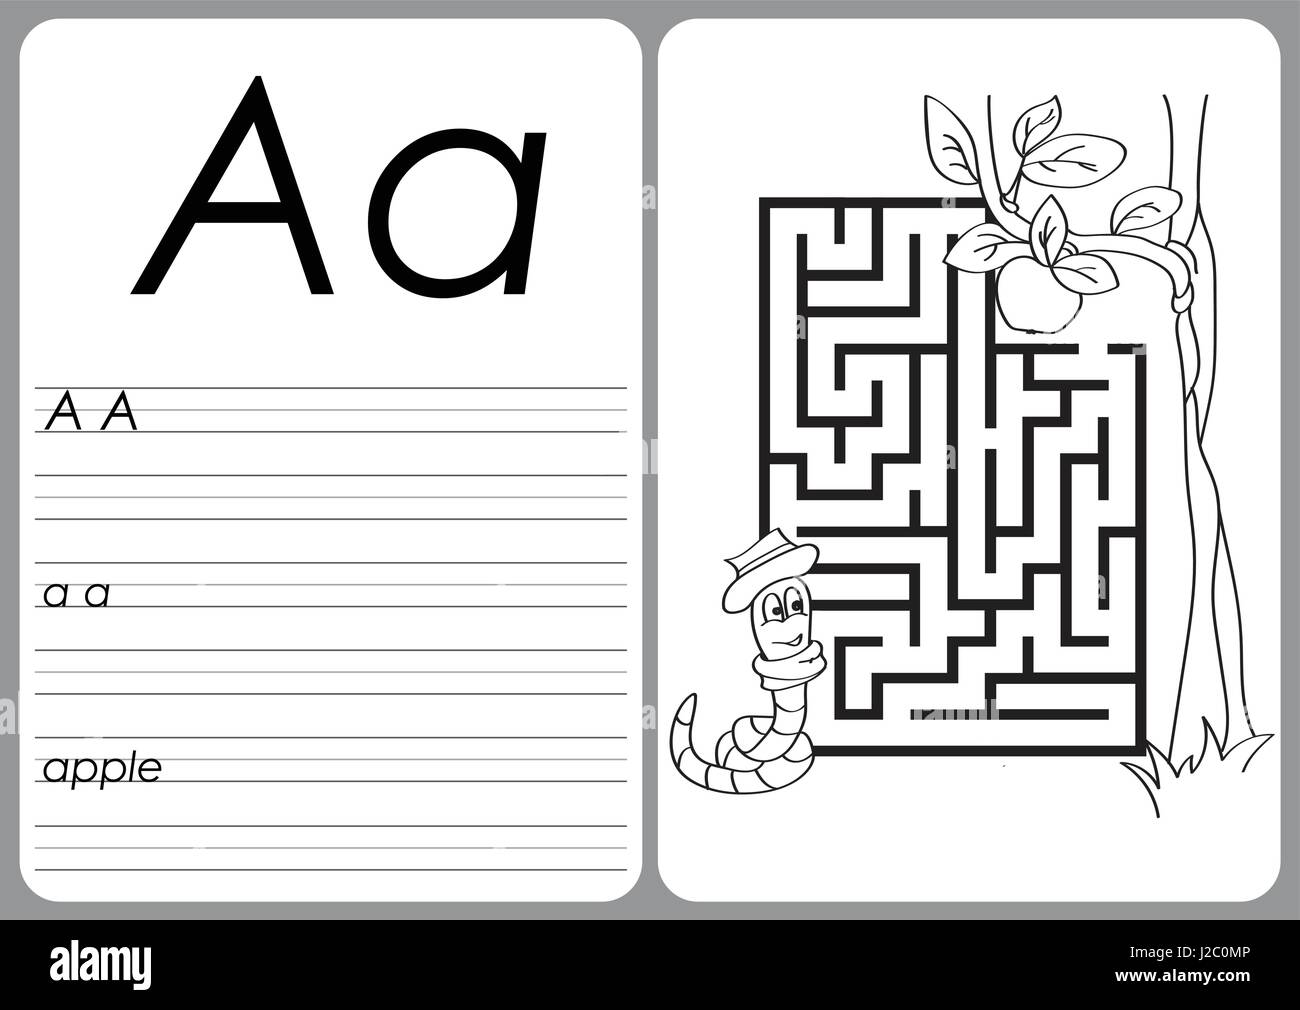 Alphabet A-Z - puzzle Worksheet - Coloring book Stock Vector Art ...